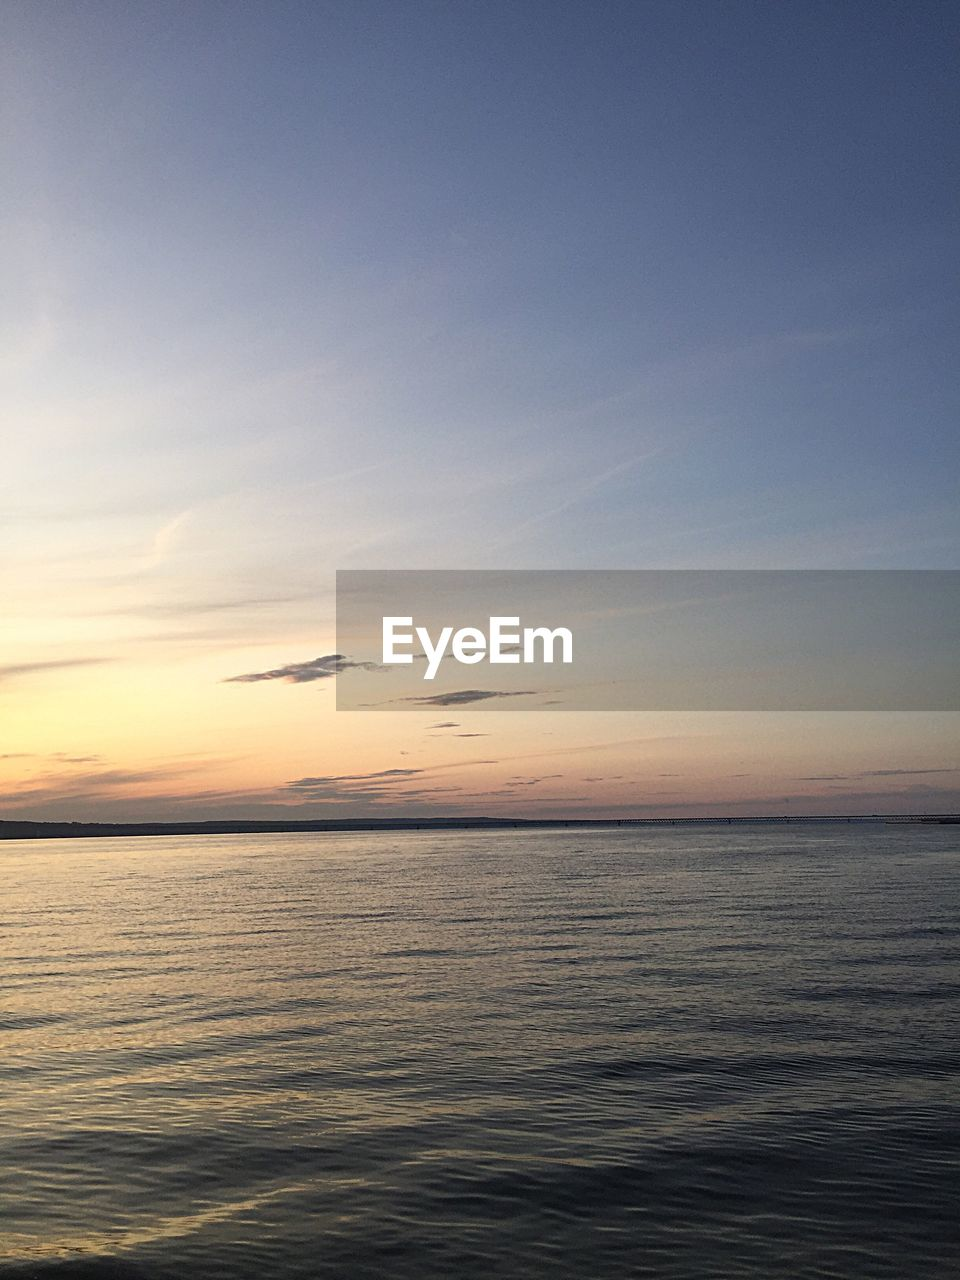 water, sea, sky, sunset, beauty in nature, scenics - nature, tranquility, tranquil scene, horizon, waterfront, horizon over water, cloud - sky, no people, nature, orange color, idyllic, outdoors, remote, copy space